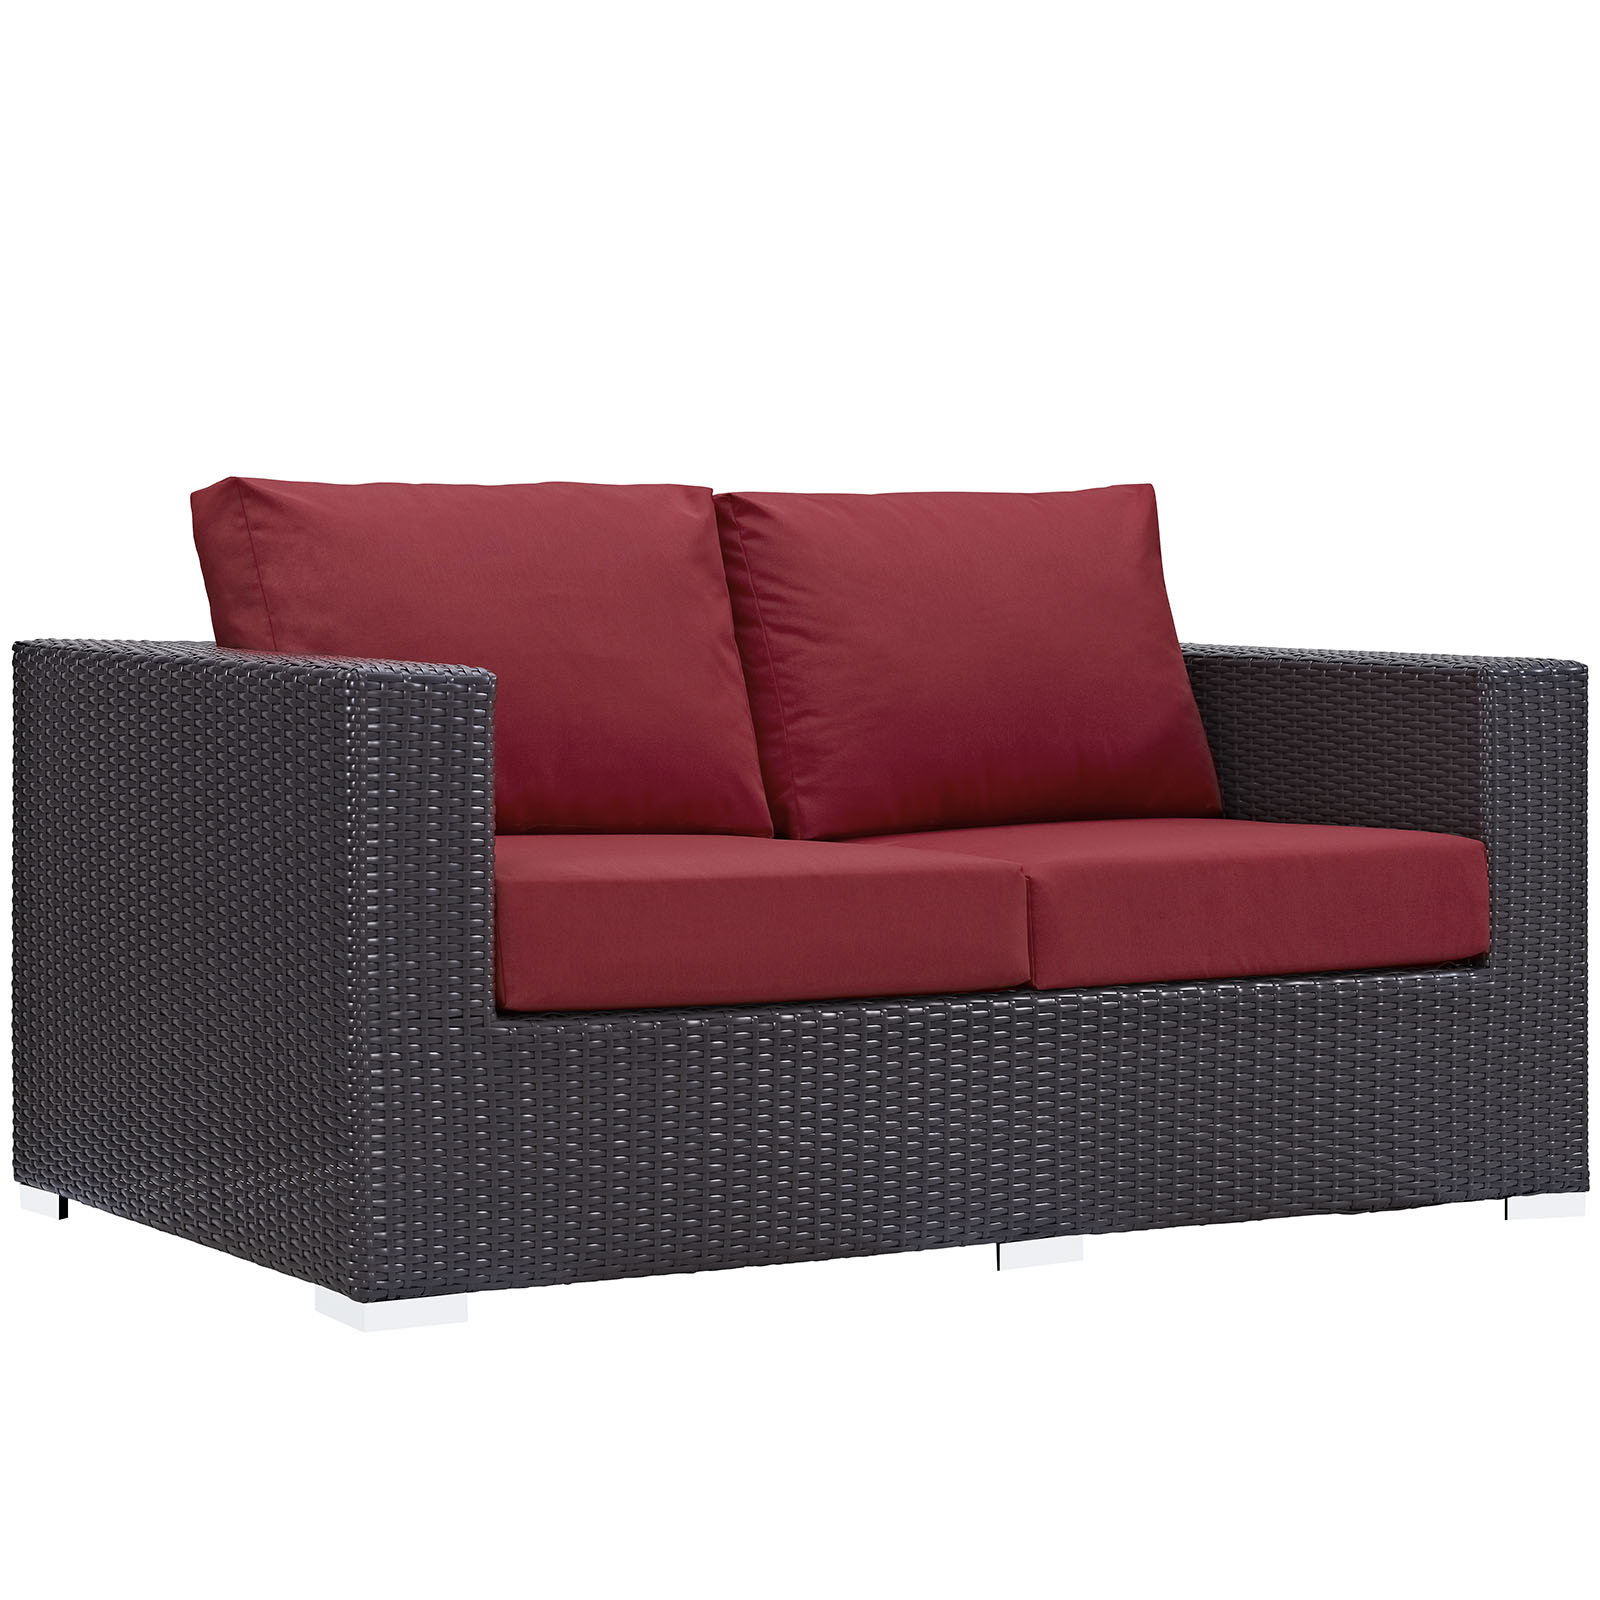 Modern Contemporary Urban Design Outdoor Patio Balcony Loveseat Sofa, Red, Rattan